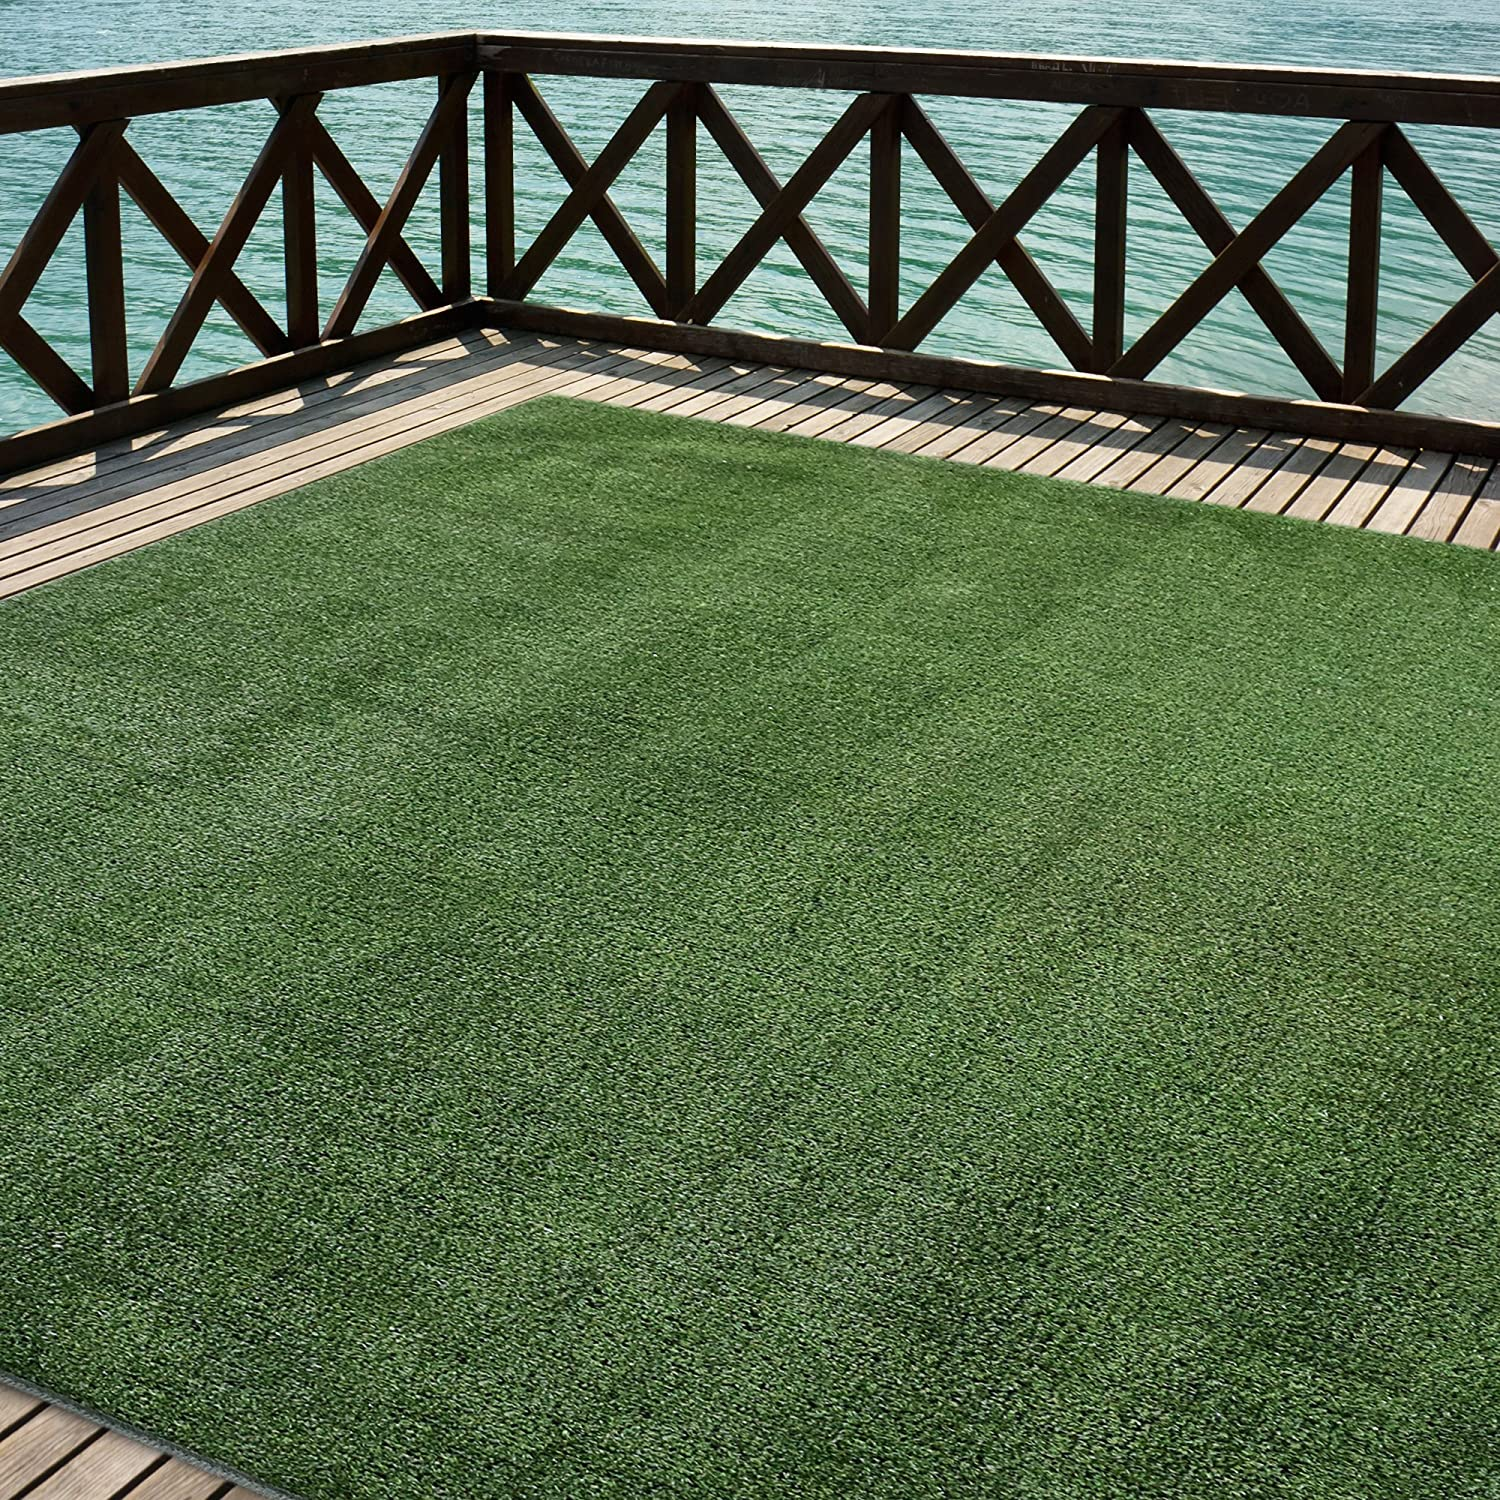 Amazon iCustomRug Outdoor Turf Rug in Green Artificial Grass